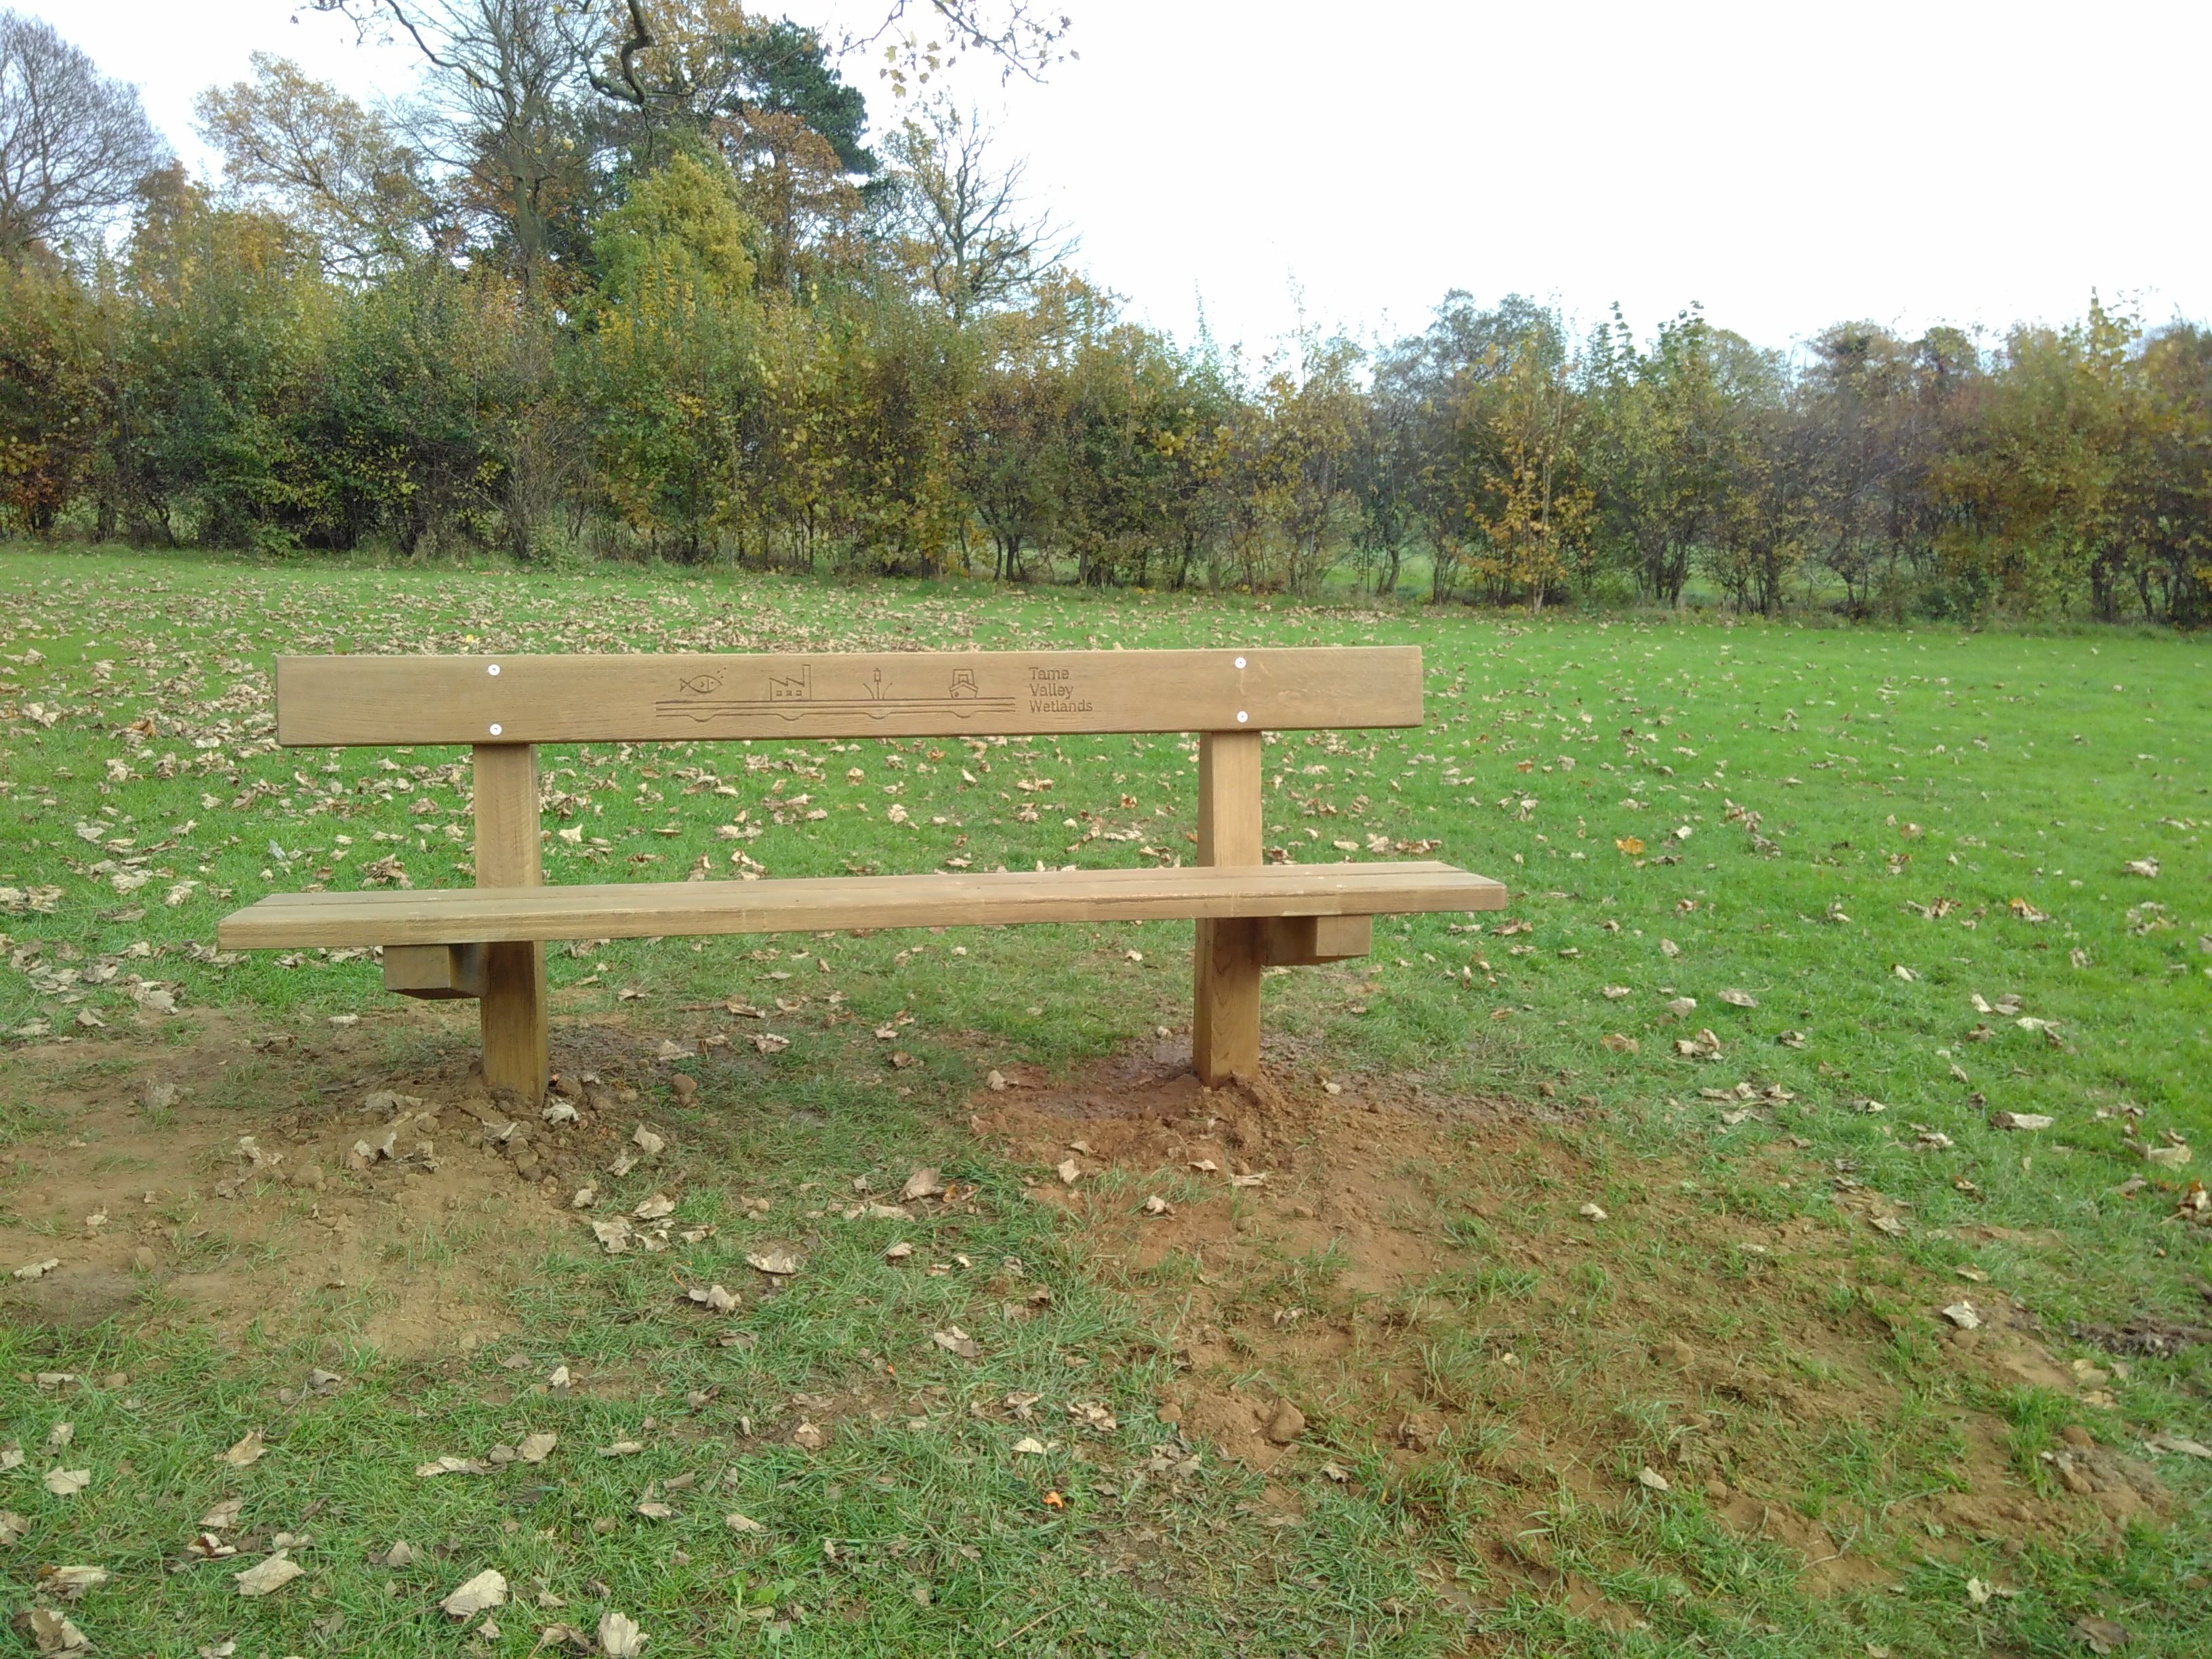 Bench installed by Tameforce volunteers in Dosthill Park local nature reserve, © Tame Valley Wetlands, Warwickshire Wildlife Trust 2017